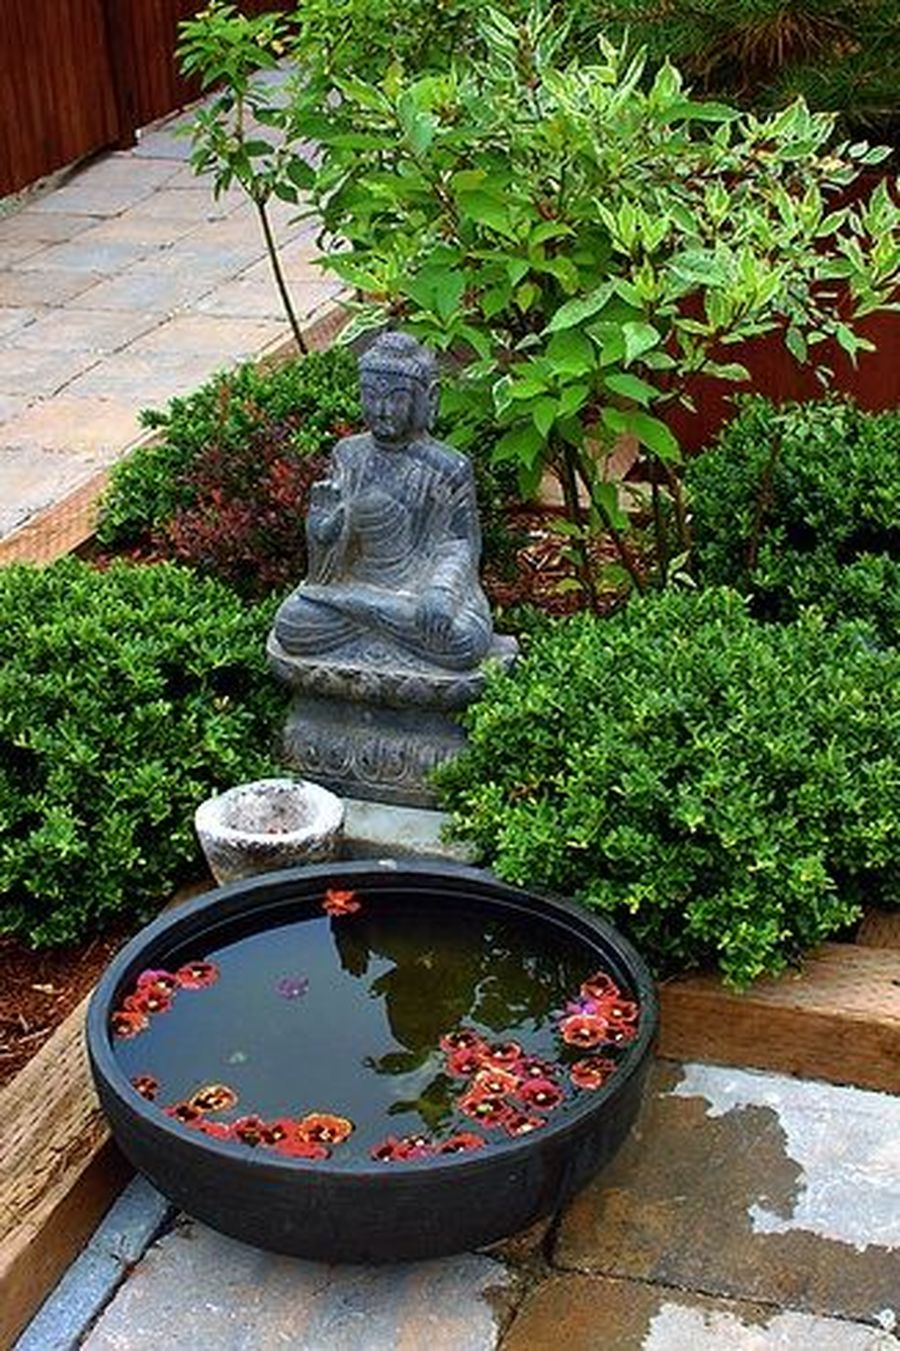 Peacefully Japanese Zen Garden Gallery Inspirations 1